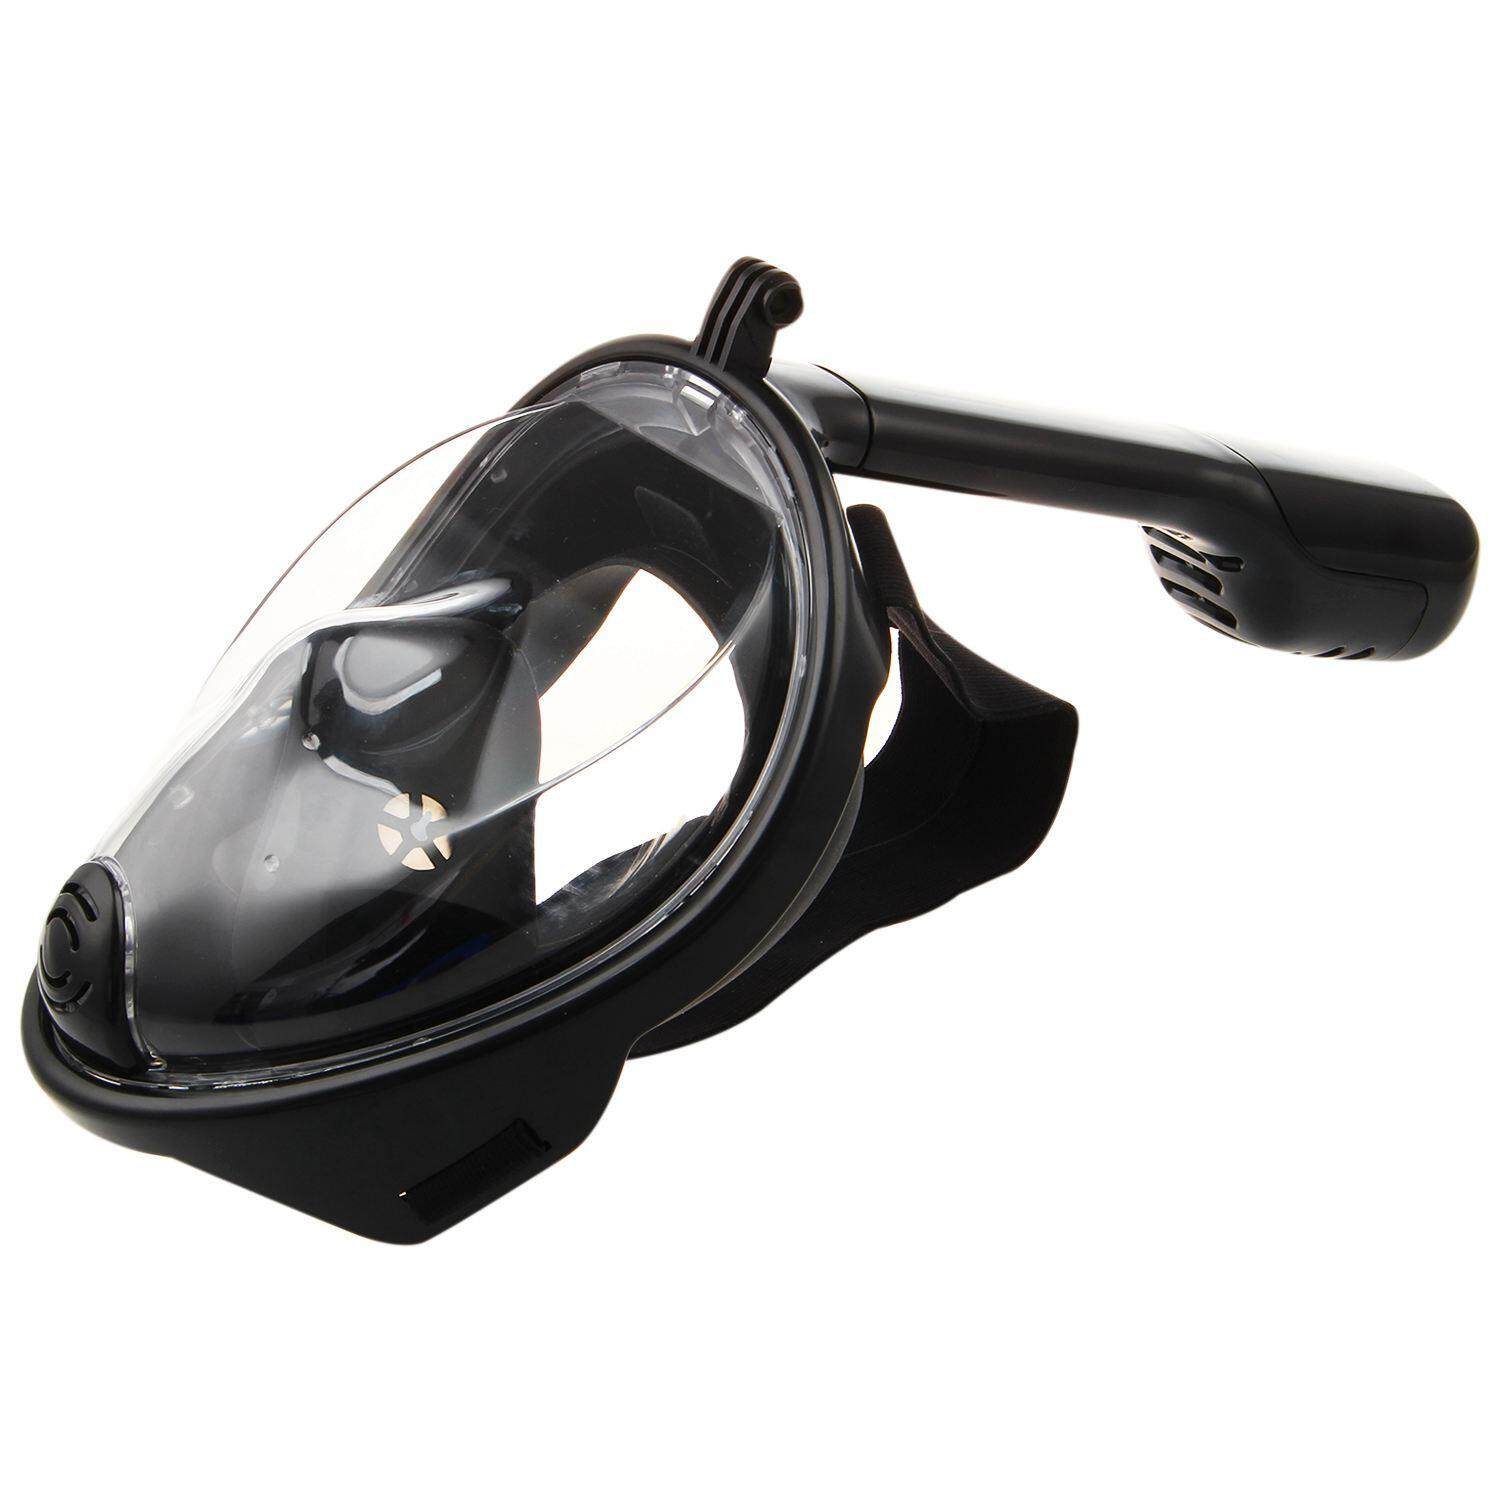 Swimming Diving Snorkeling Full Face Mask Surface Scuba For Gopro S/m Black By Yomichew.